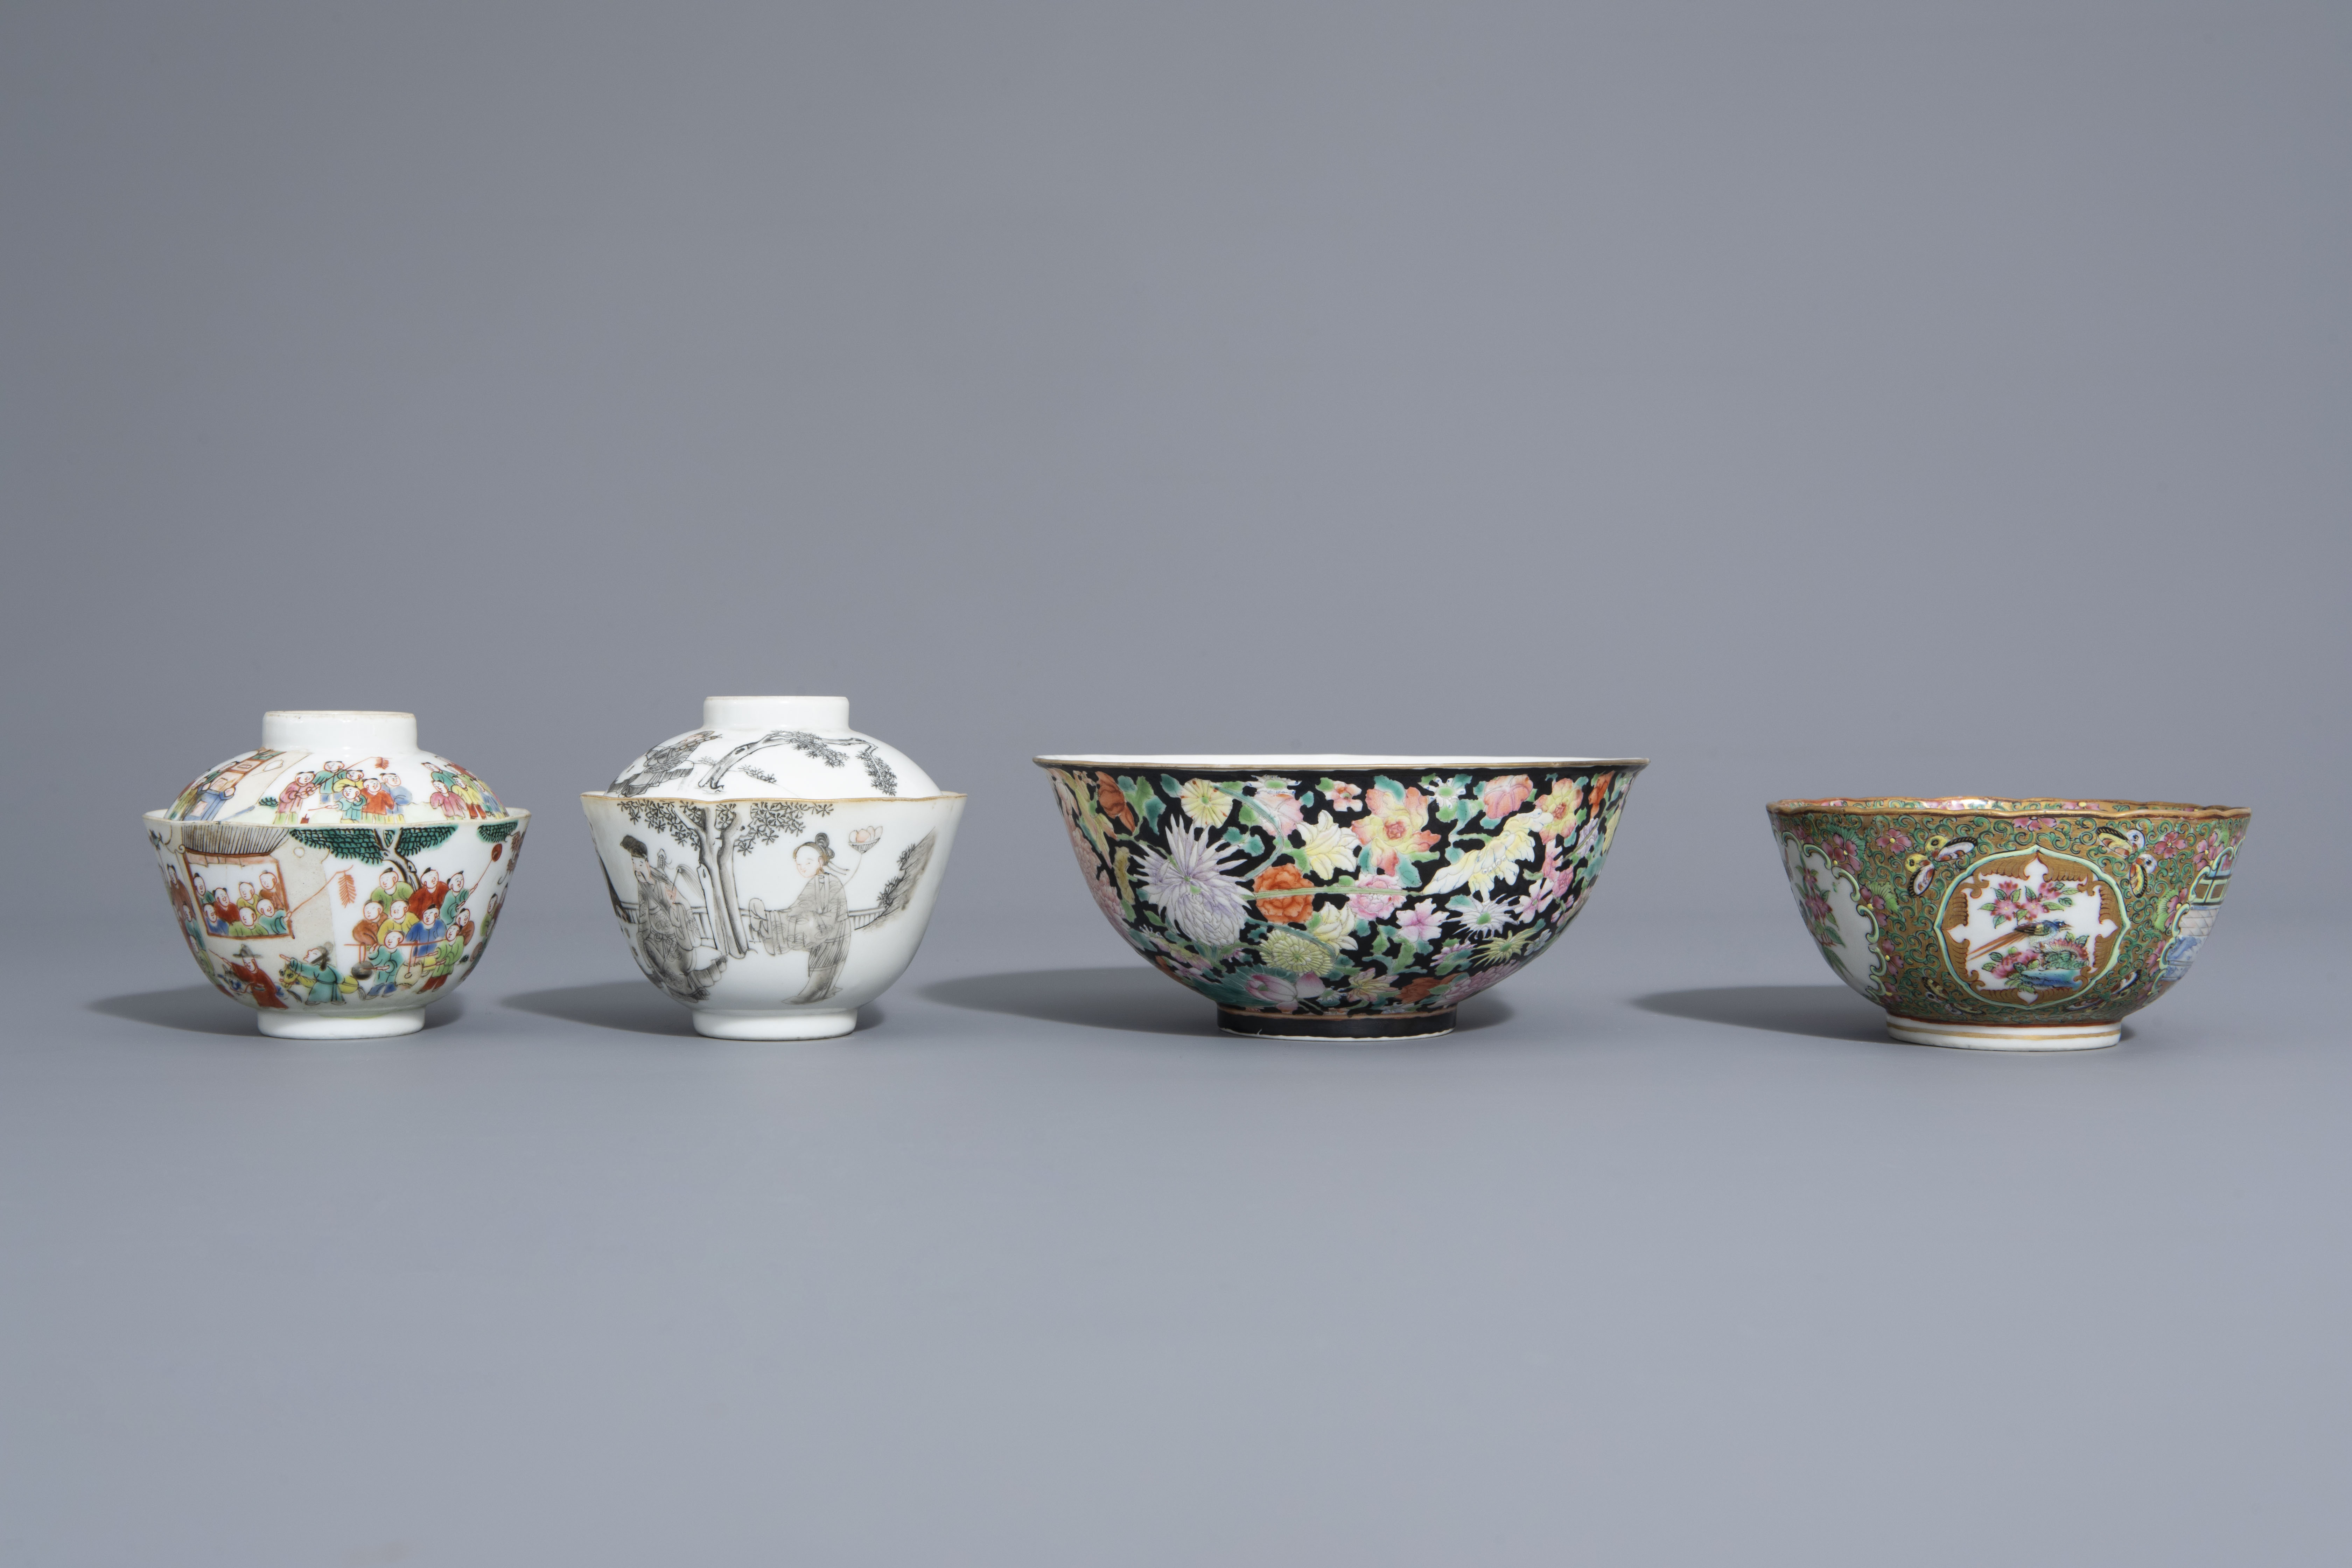 Three Chinese famille rose and grisaille bowls and a Canton bowl on stand, 19th/20th C. - Image 5 of 9